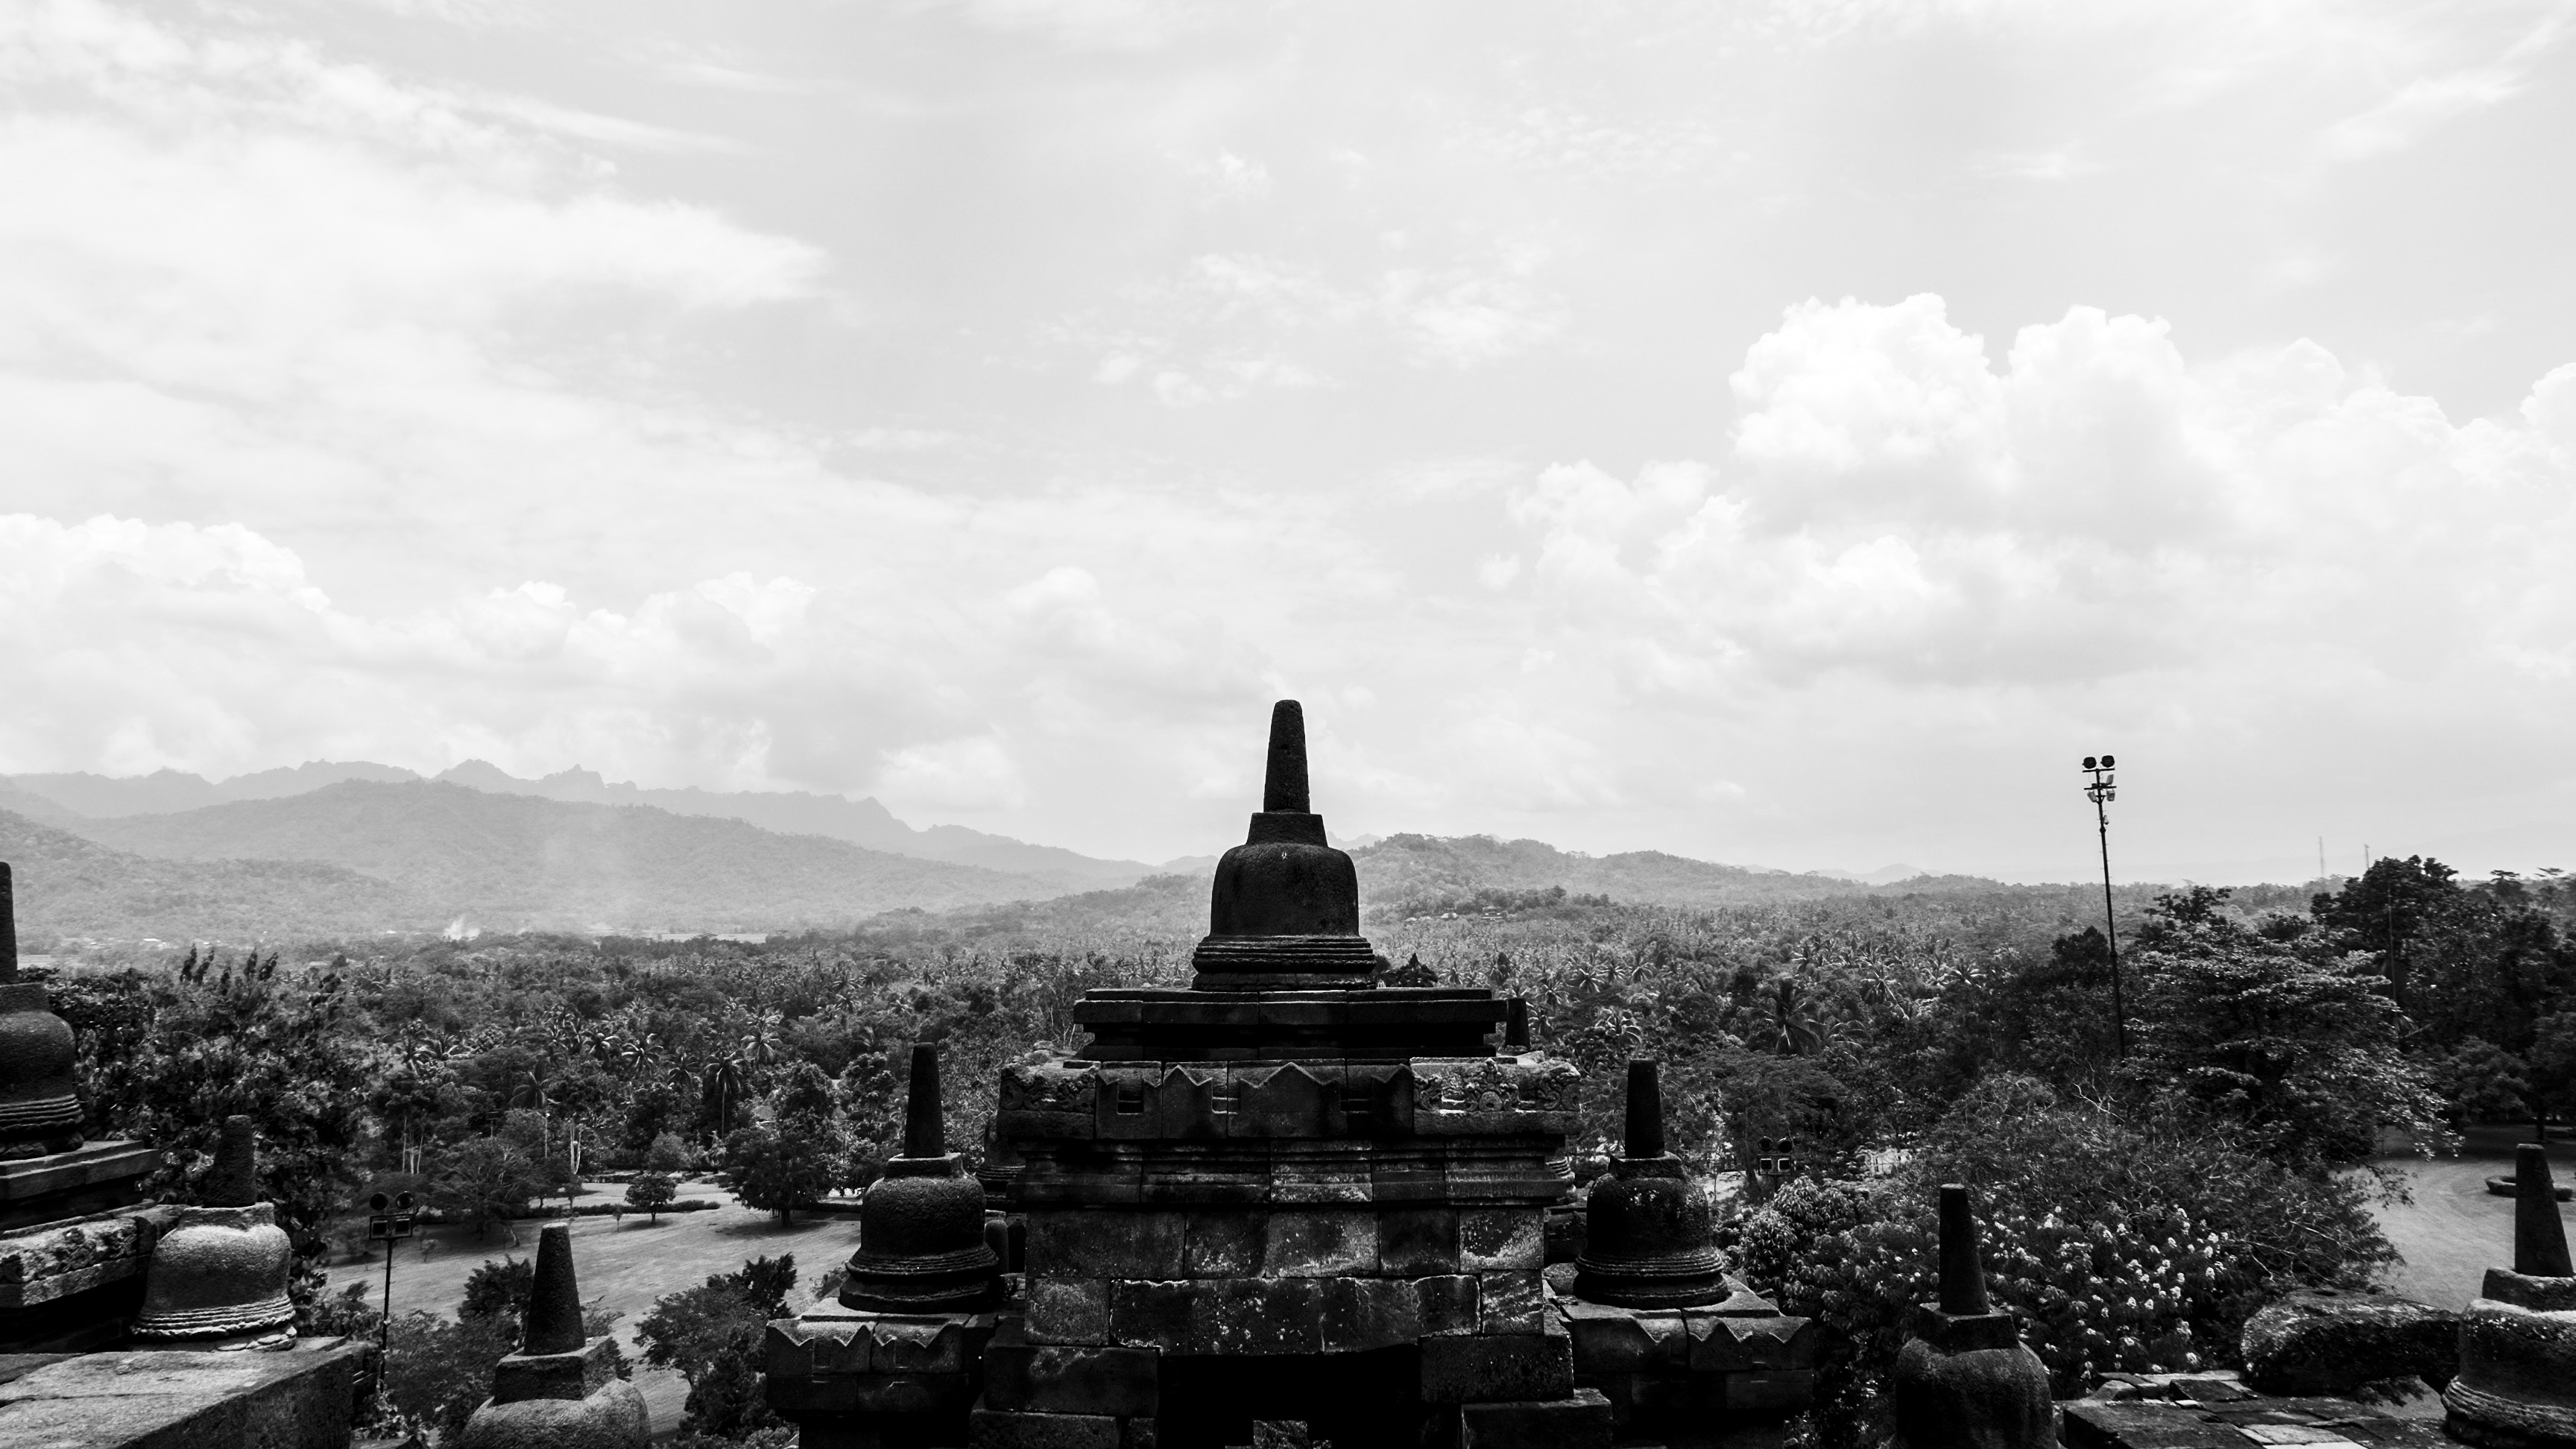 Another Yogya Story